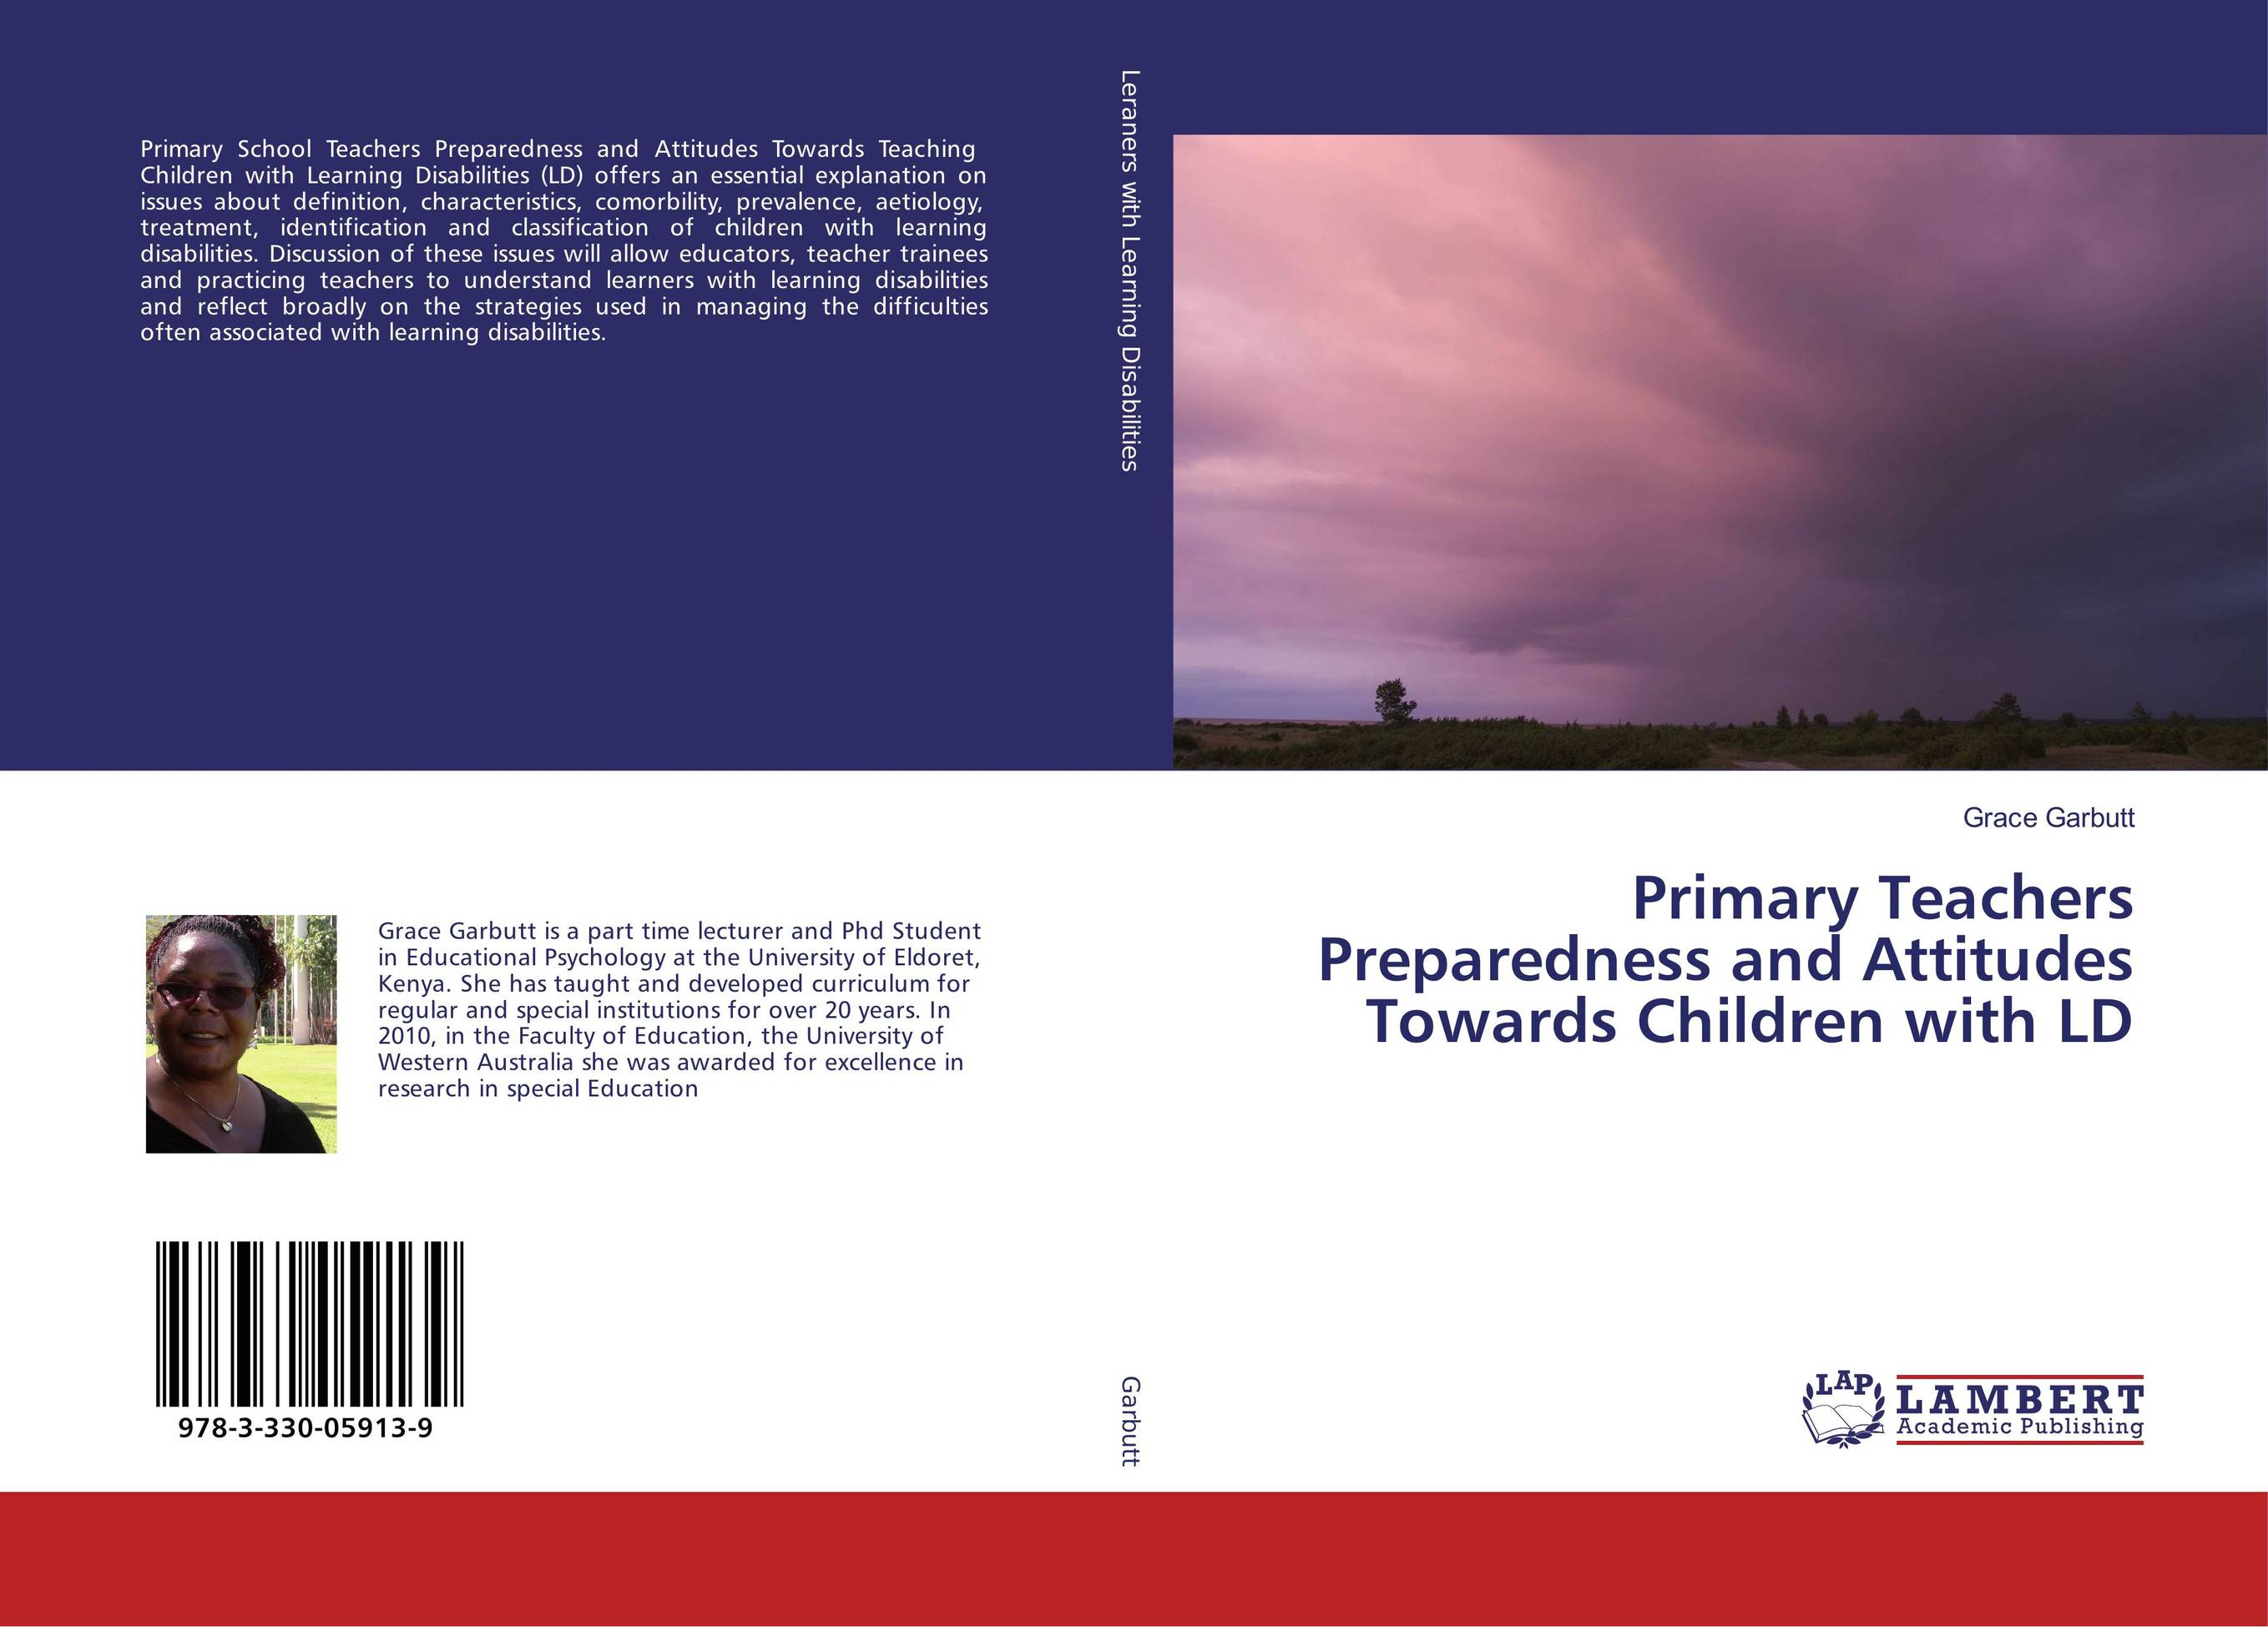 teachers attitude towards children with disabilities education essay We work with partners to promote the inclusion of children with disabilities into society by stimulating changes in attitudes and practices of the general public and service providers toward children with disabilities.